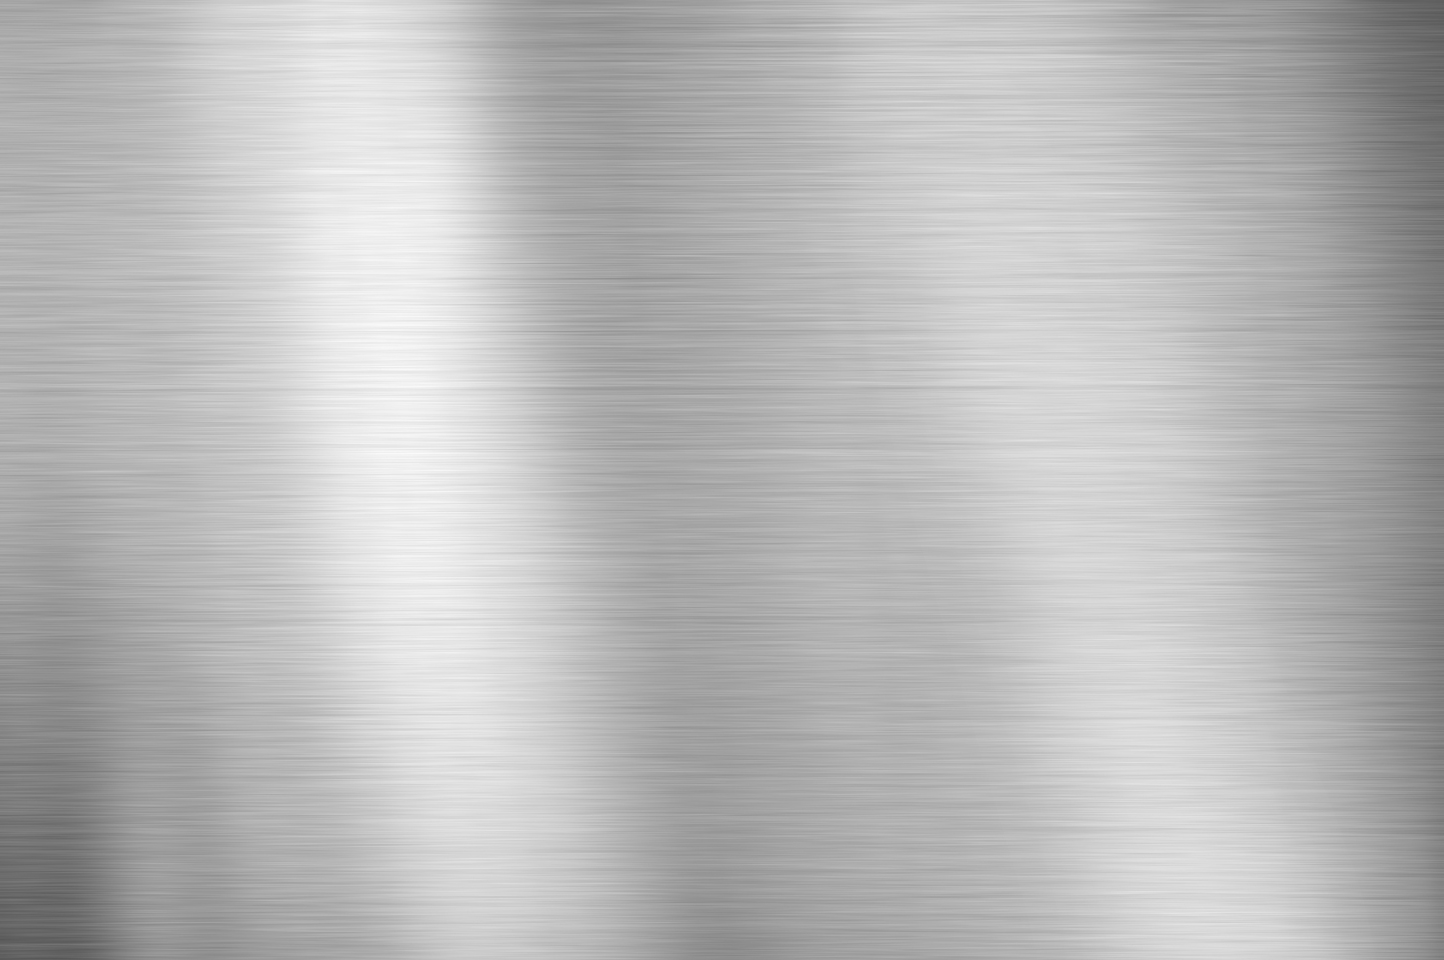 MPLS-Washer-Stainless-Steel-Background